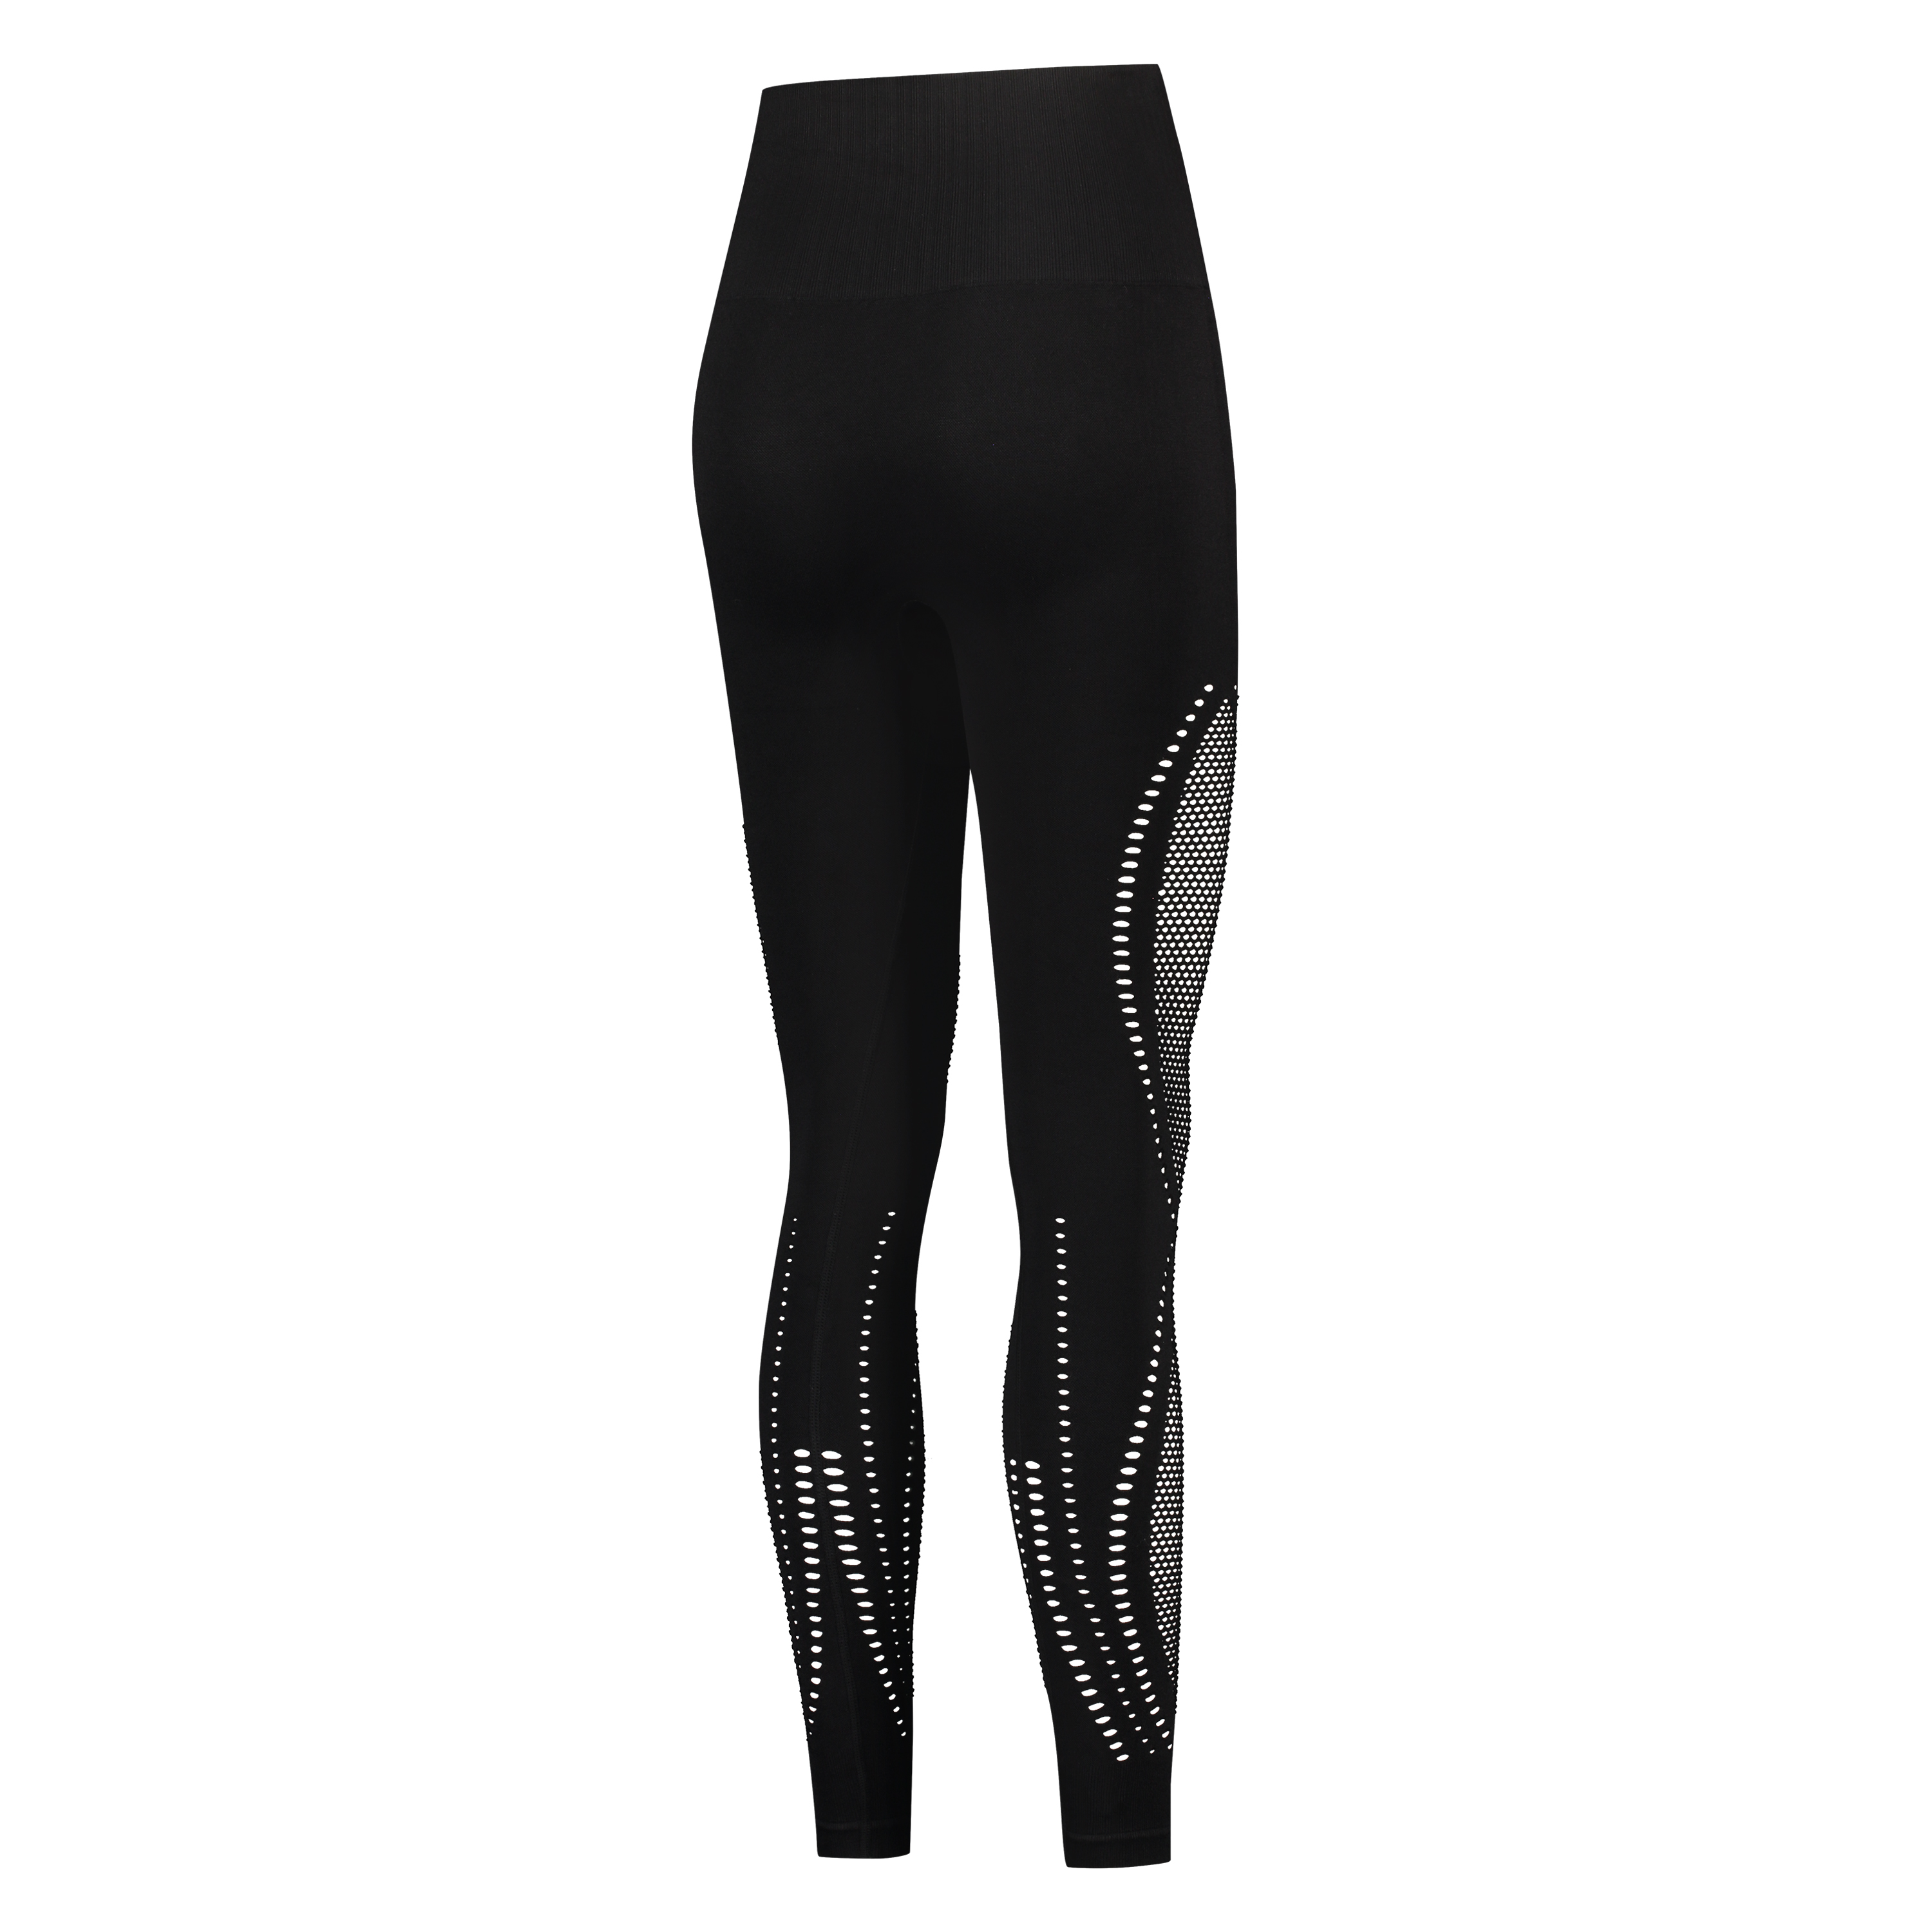 HKMX høje sportsleggings, sort, main